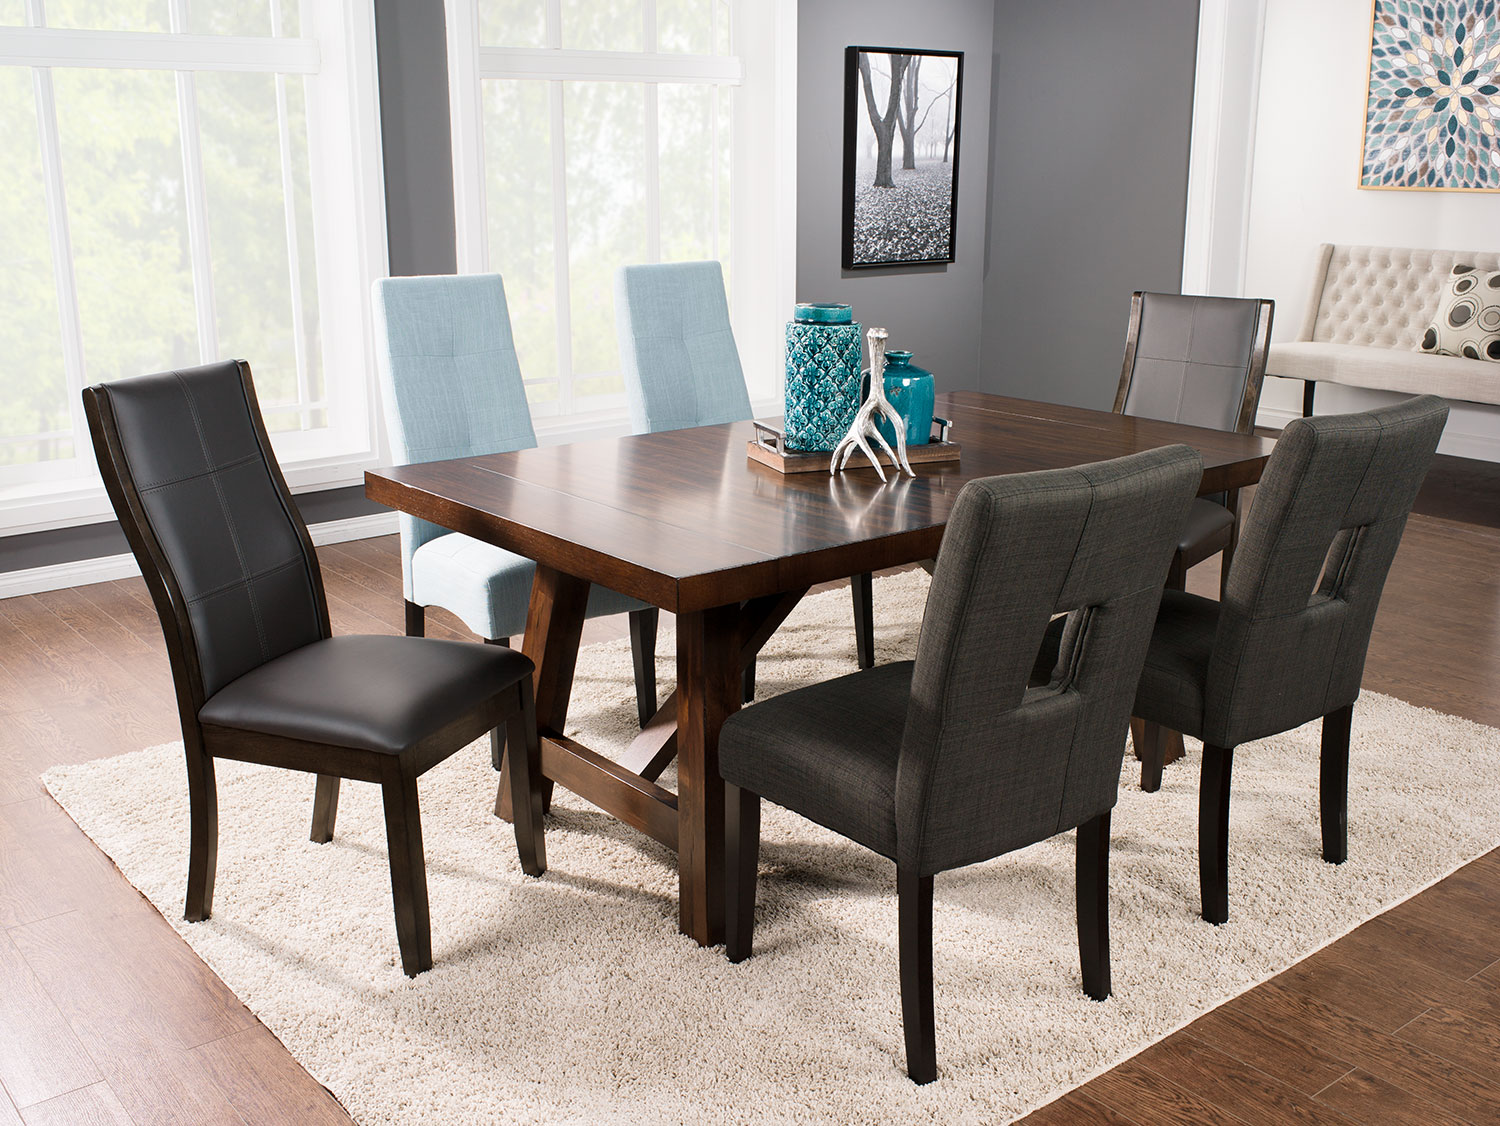 Dining Room Furniture - Adara 7-Piece Dining Package with Assorted Chairs